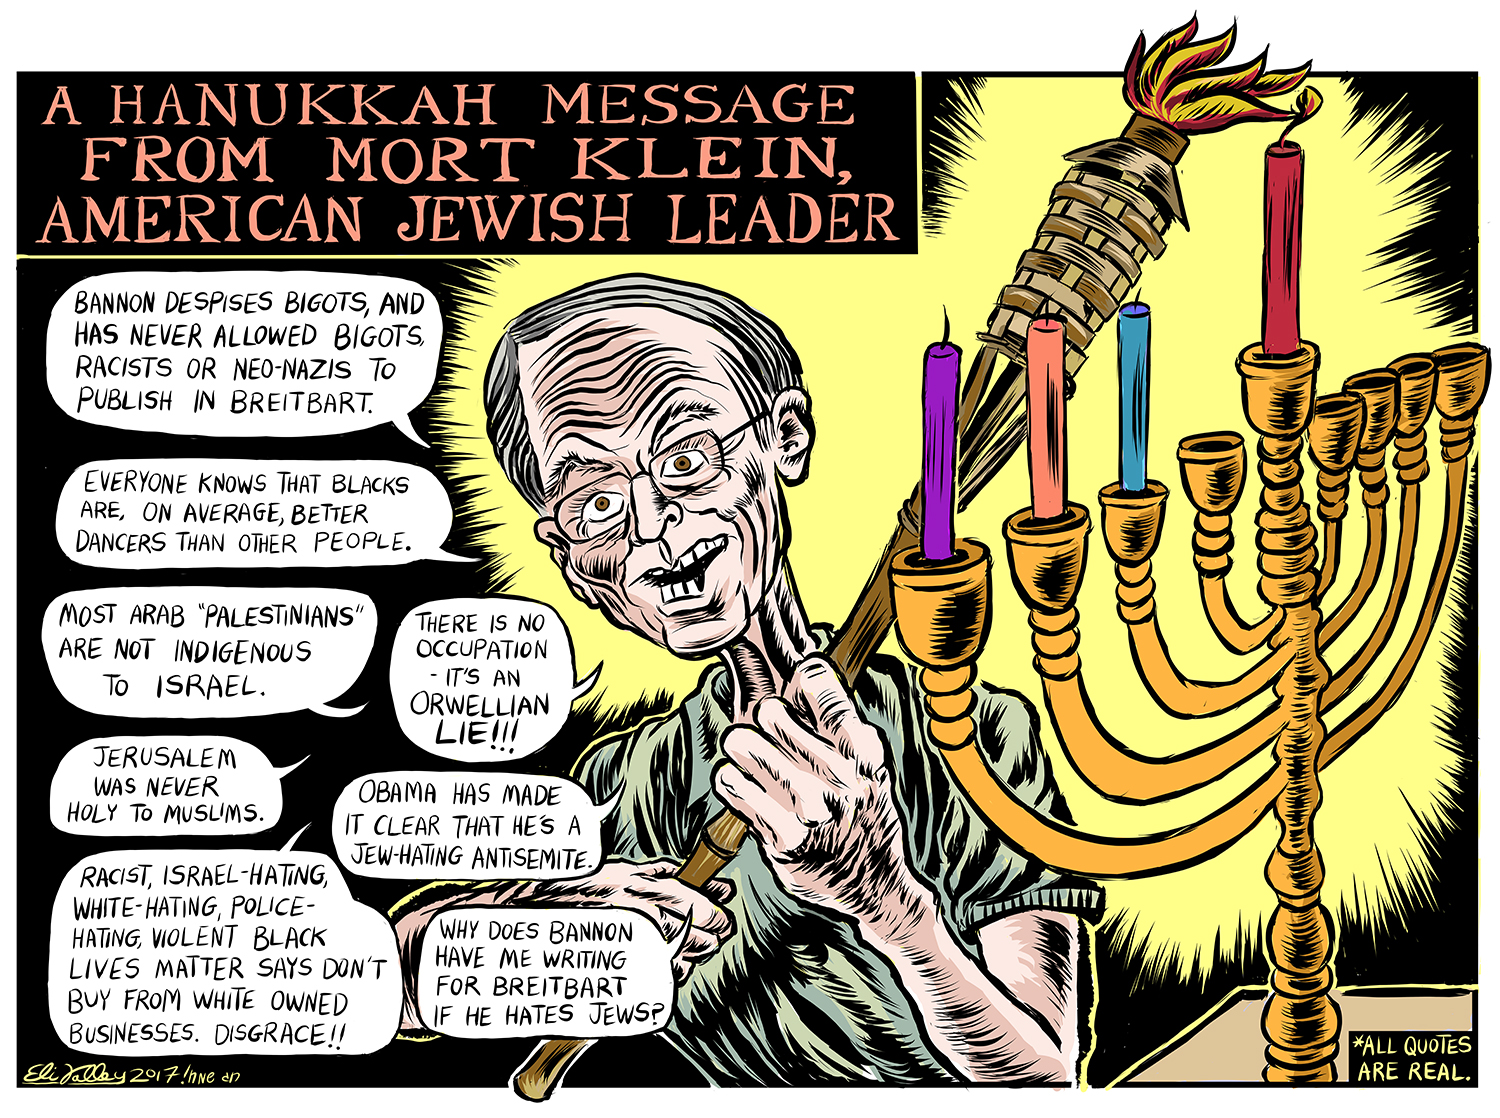 Mort Klein Hanukkah, Jewish Currents, 12/14/17